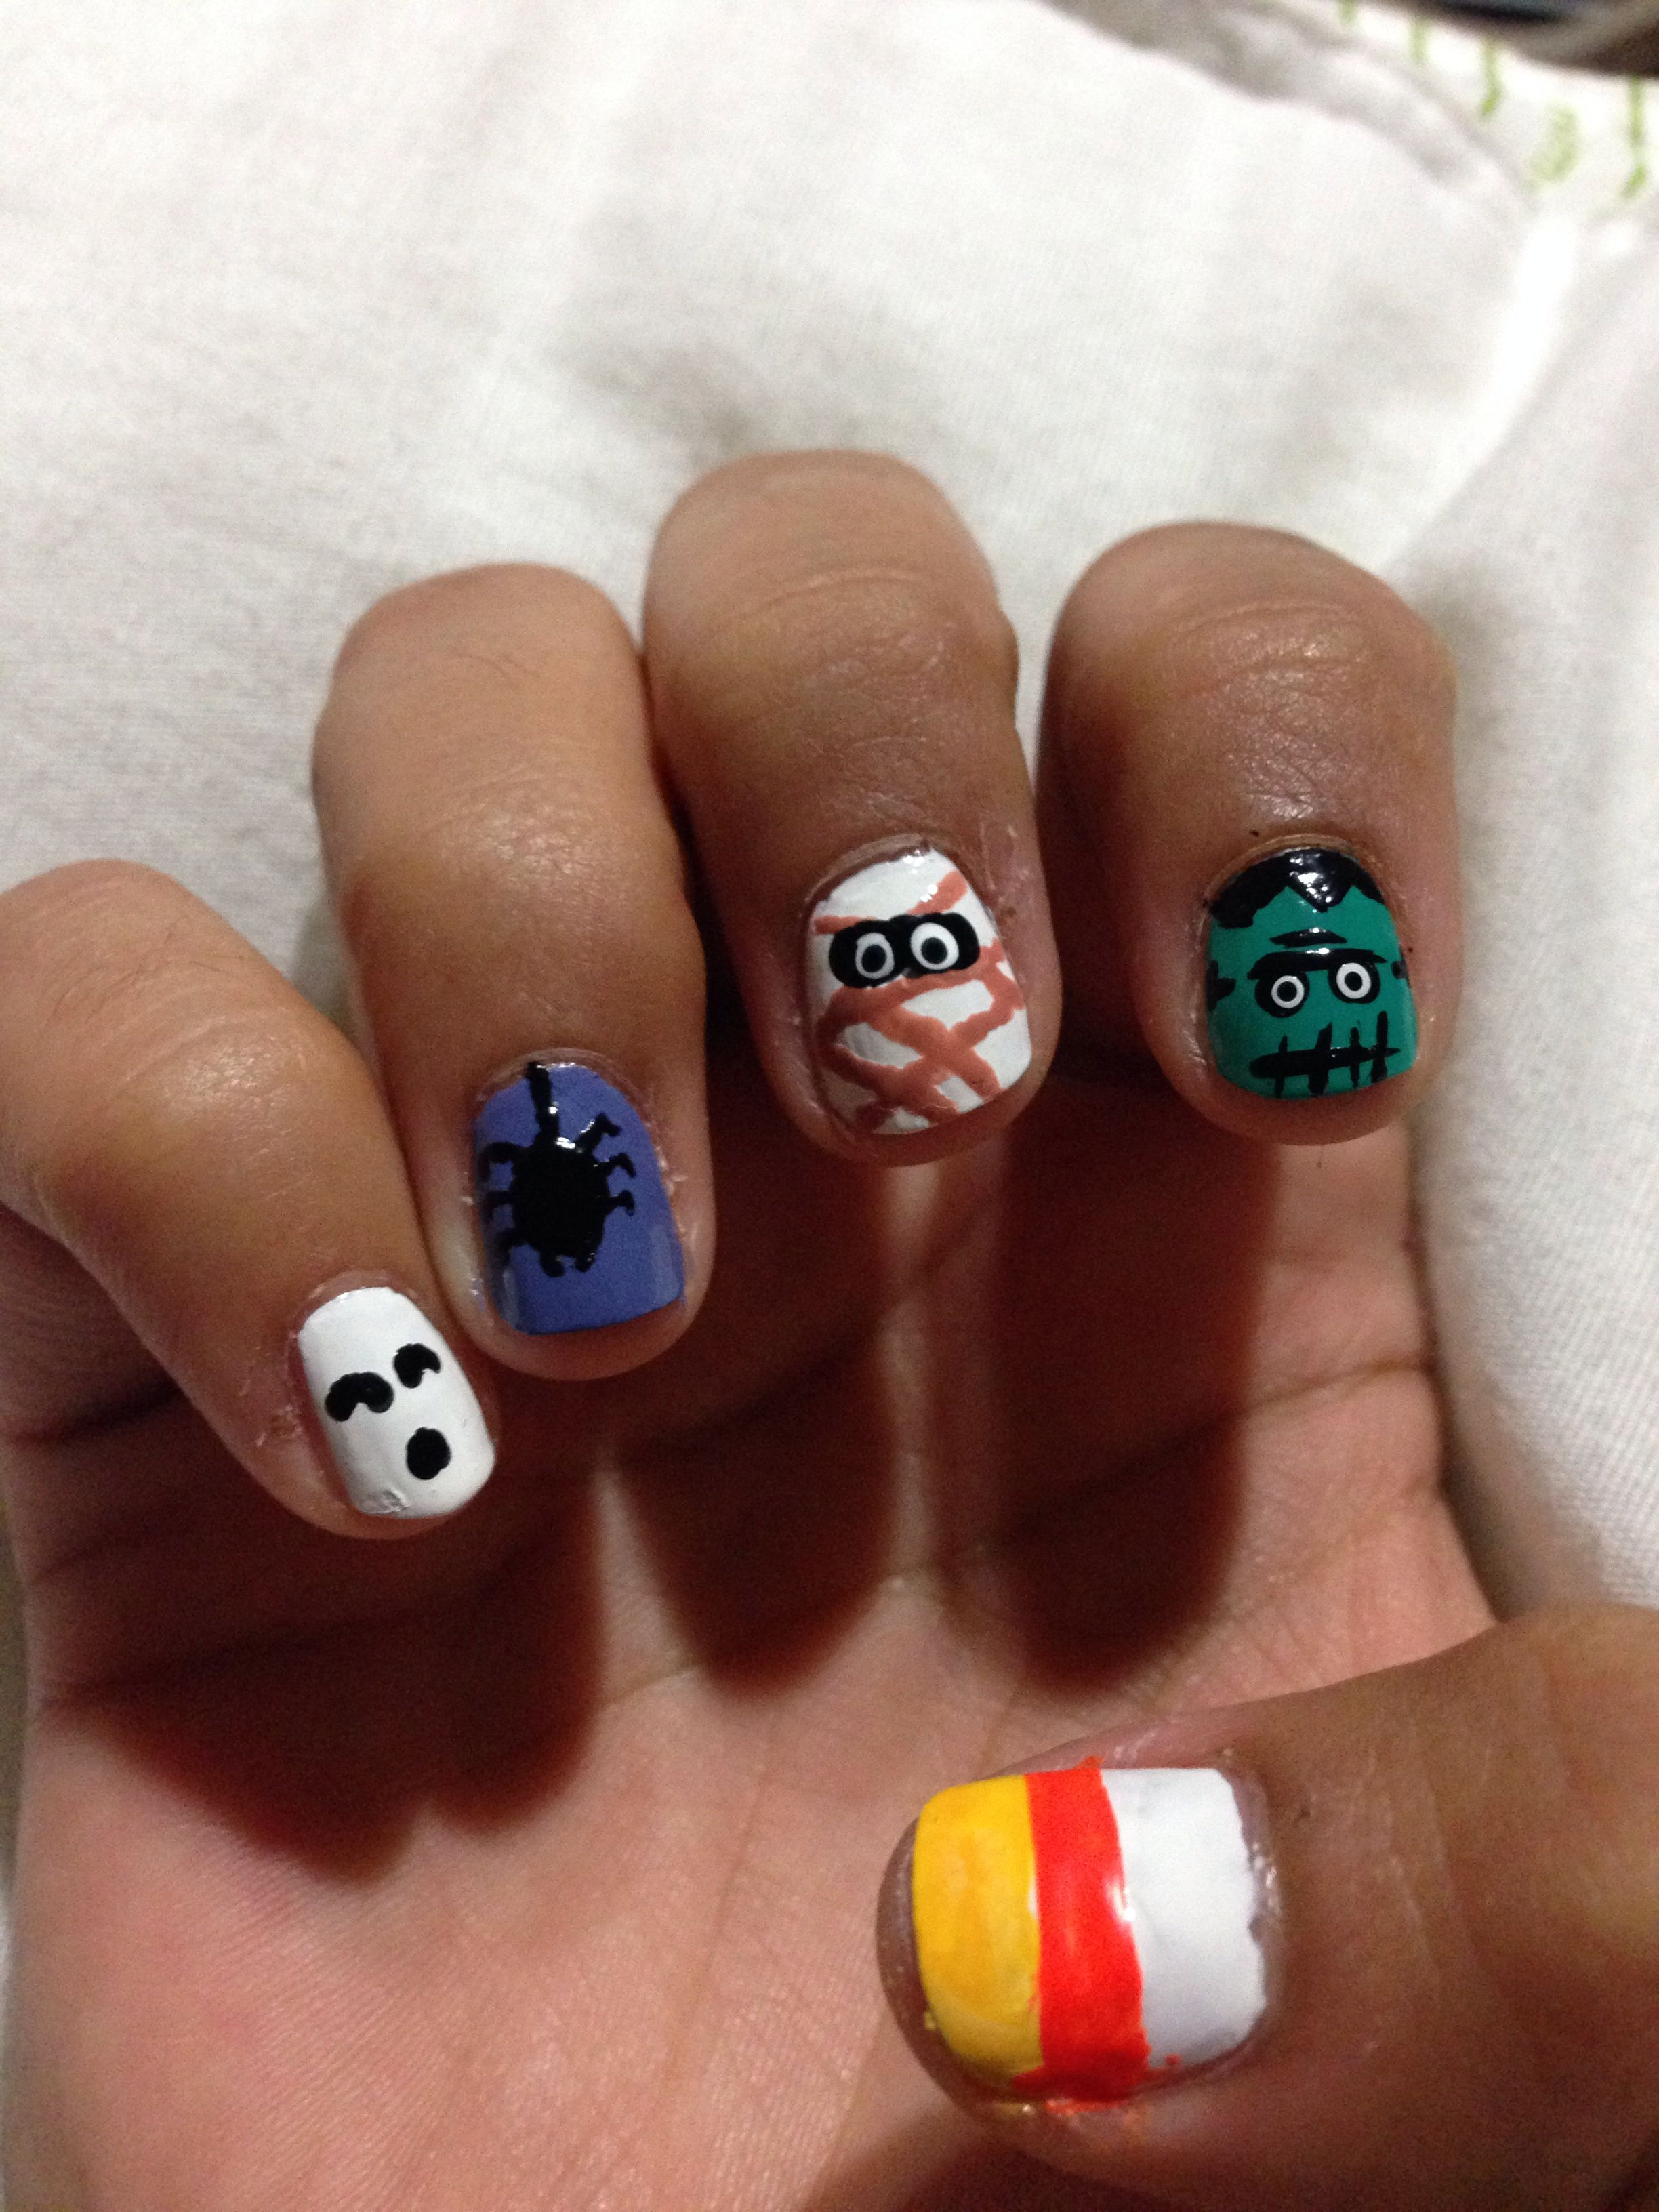 My Halloween nails 2013 #nailart #halloween #nails #art #pumpkin #spider #vampire #frankenstein #mummy #eyeball #ghost #candycorn #drippingblood